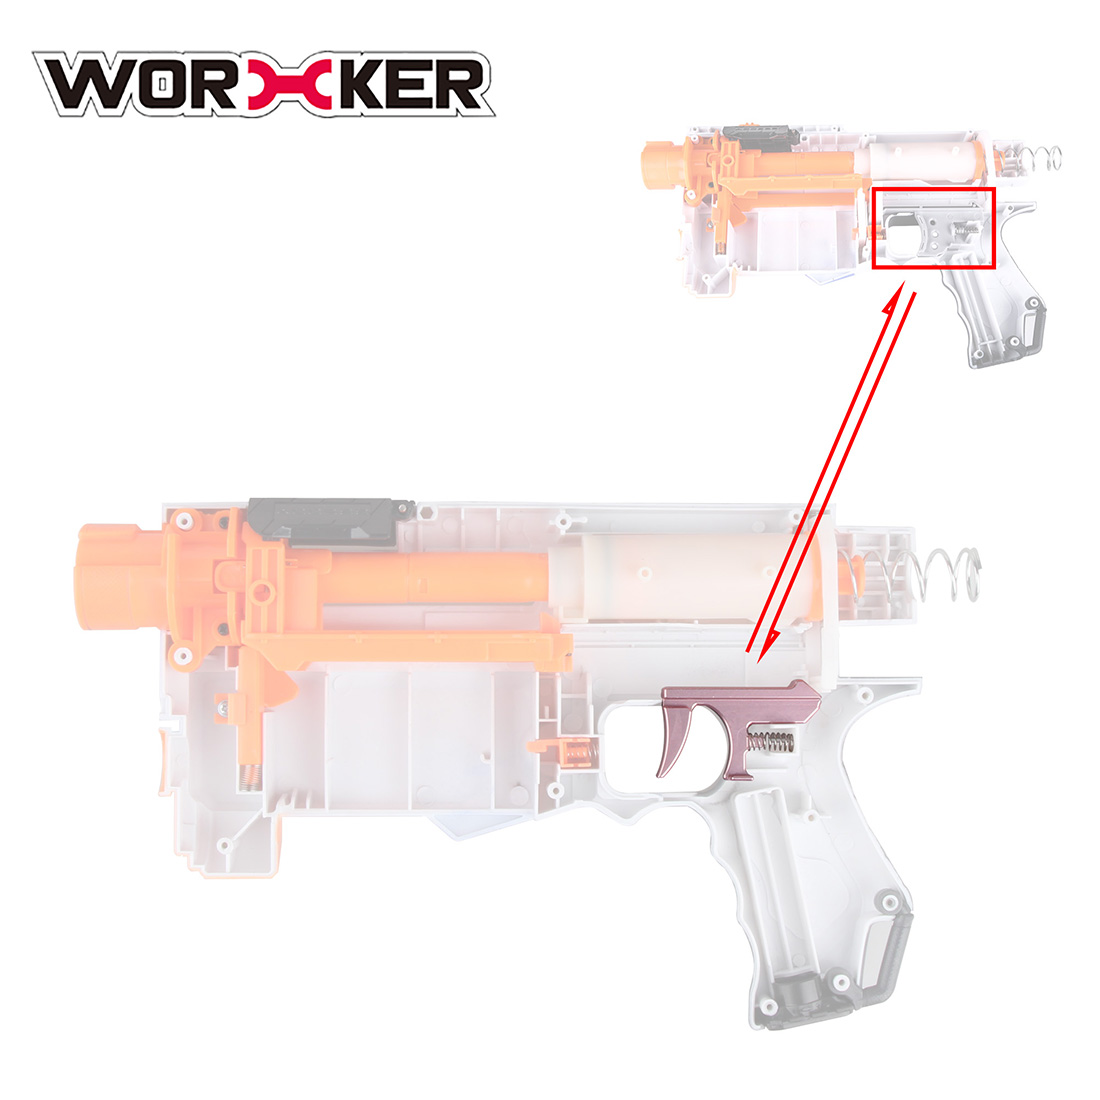 Worker STF Switch Releaser for Nerf Retaliator and Worker Prediction R Series Transmitter - Rose Gold